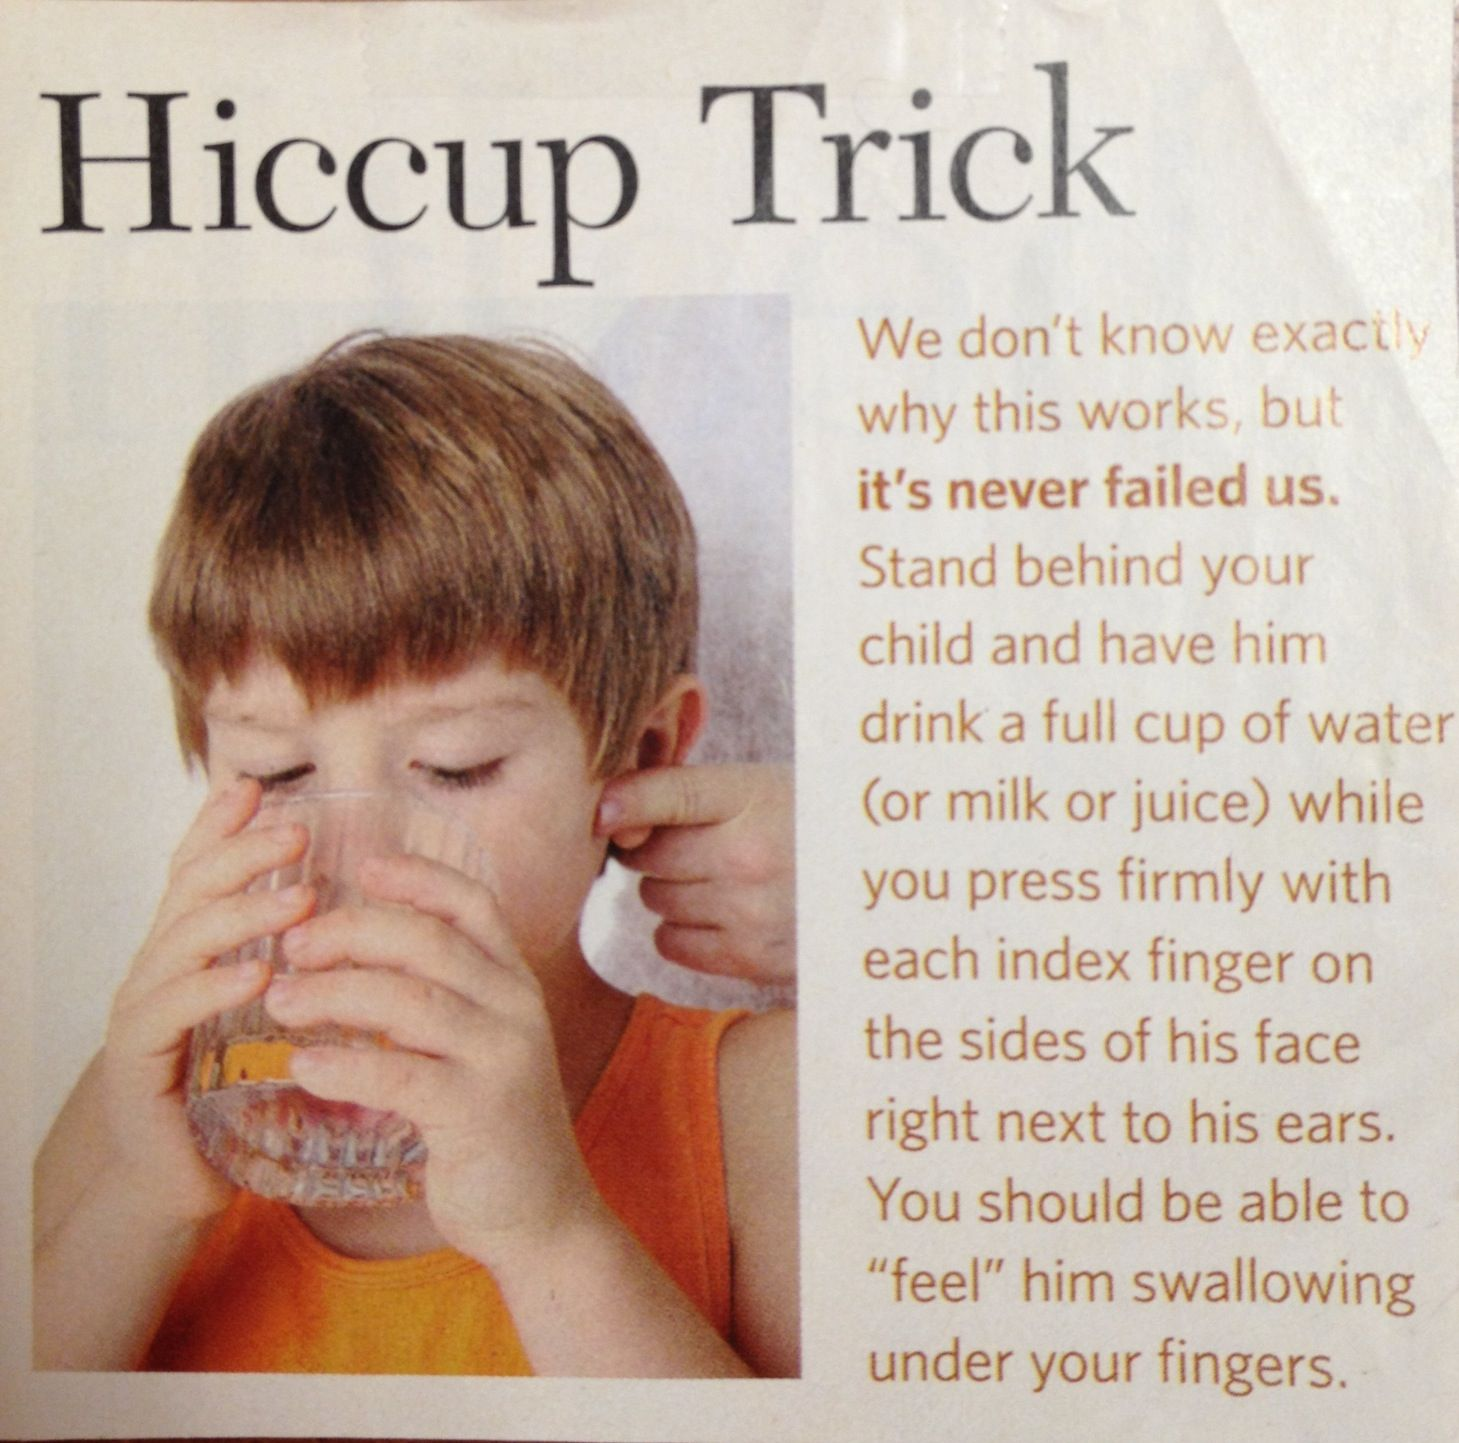 How to quickly get rid of hiccups